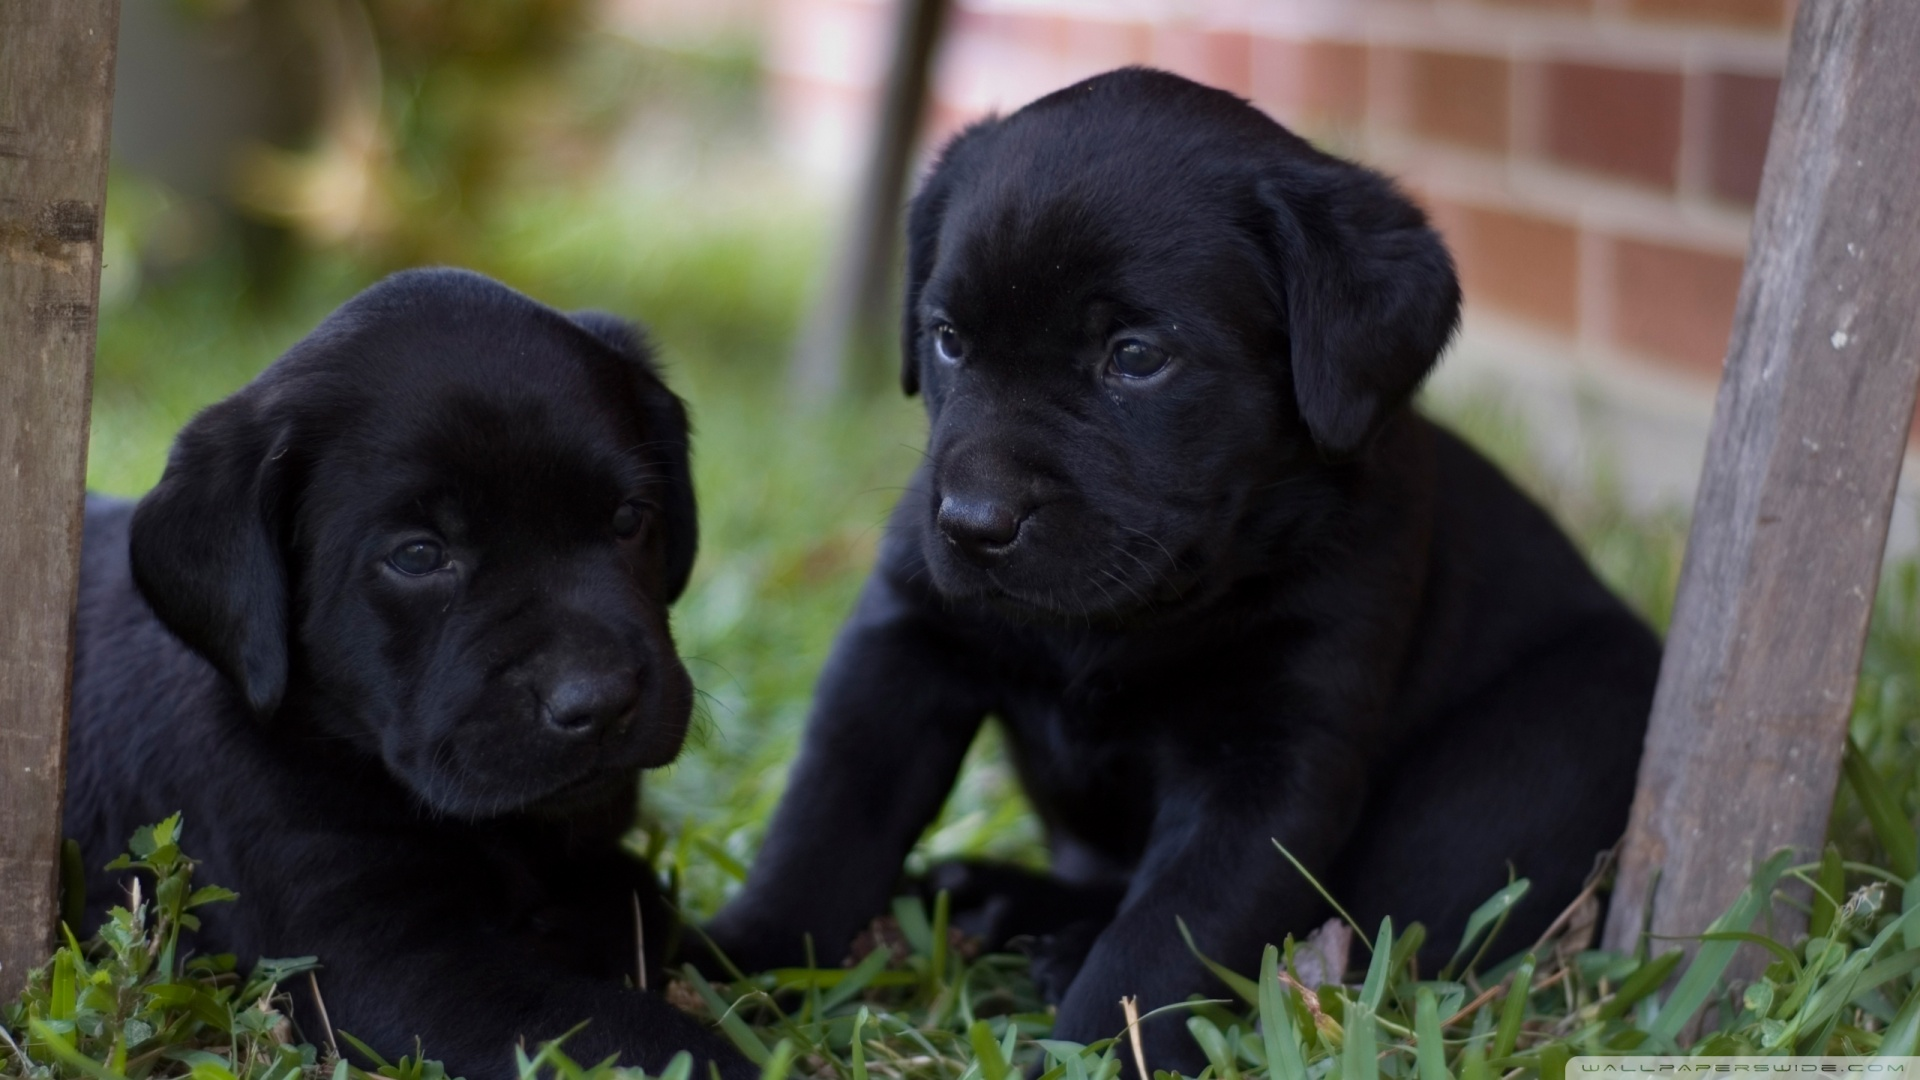 Cute Labrador Puppies wallpaper   820707 1920x1080